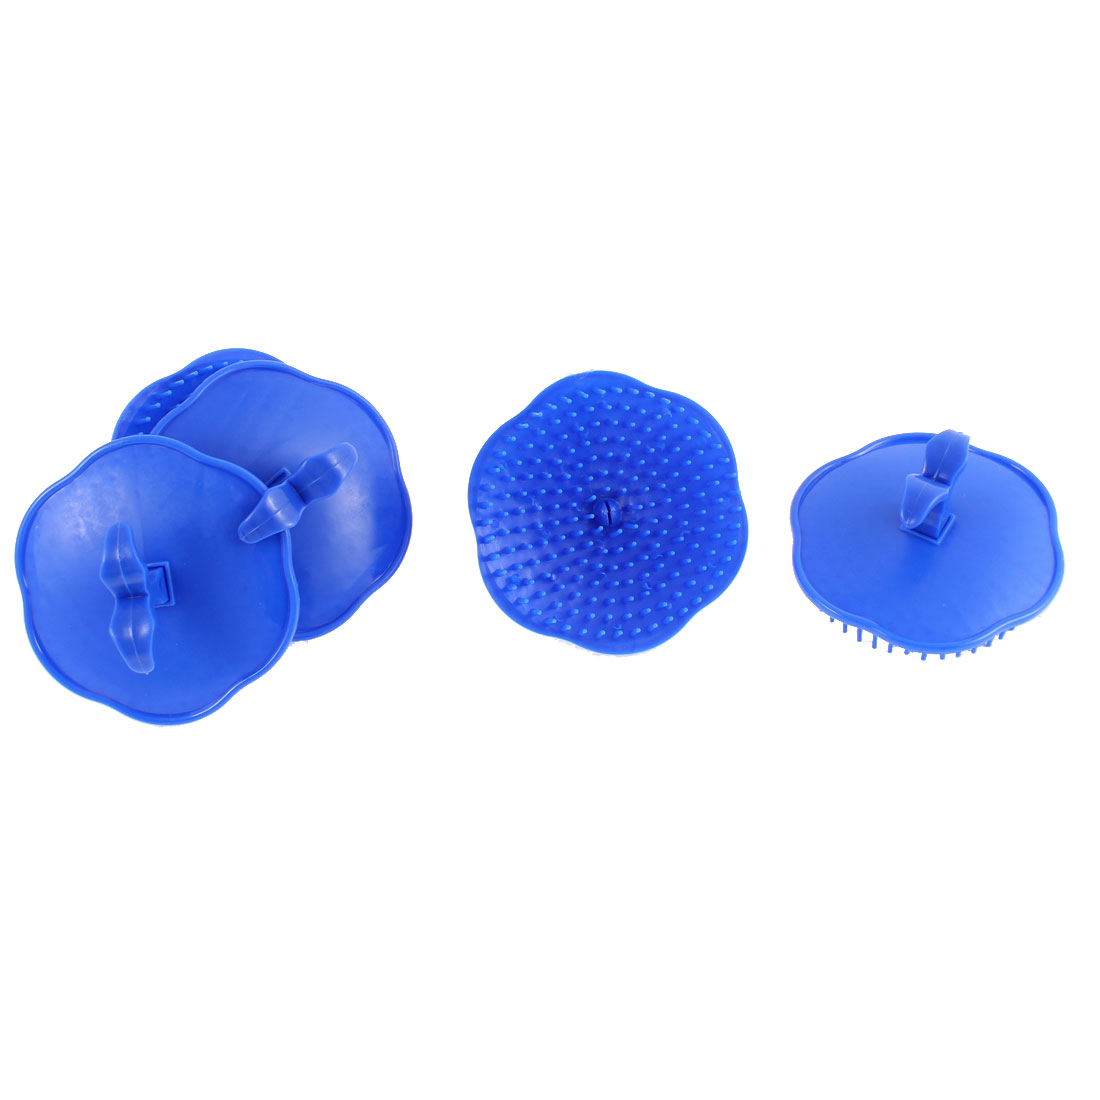 Plastic Head Hair Washing Scalp Massage Shampoo Brush Dark Blue 5Pcs